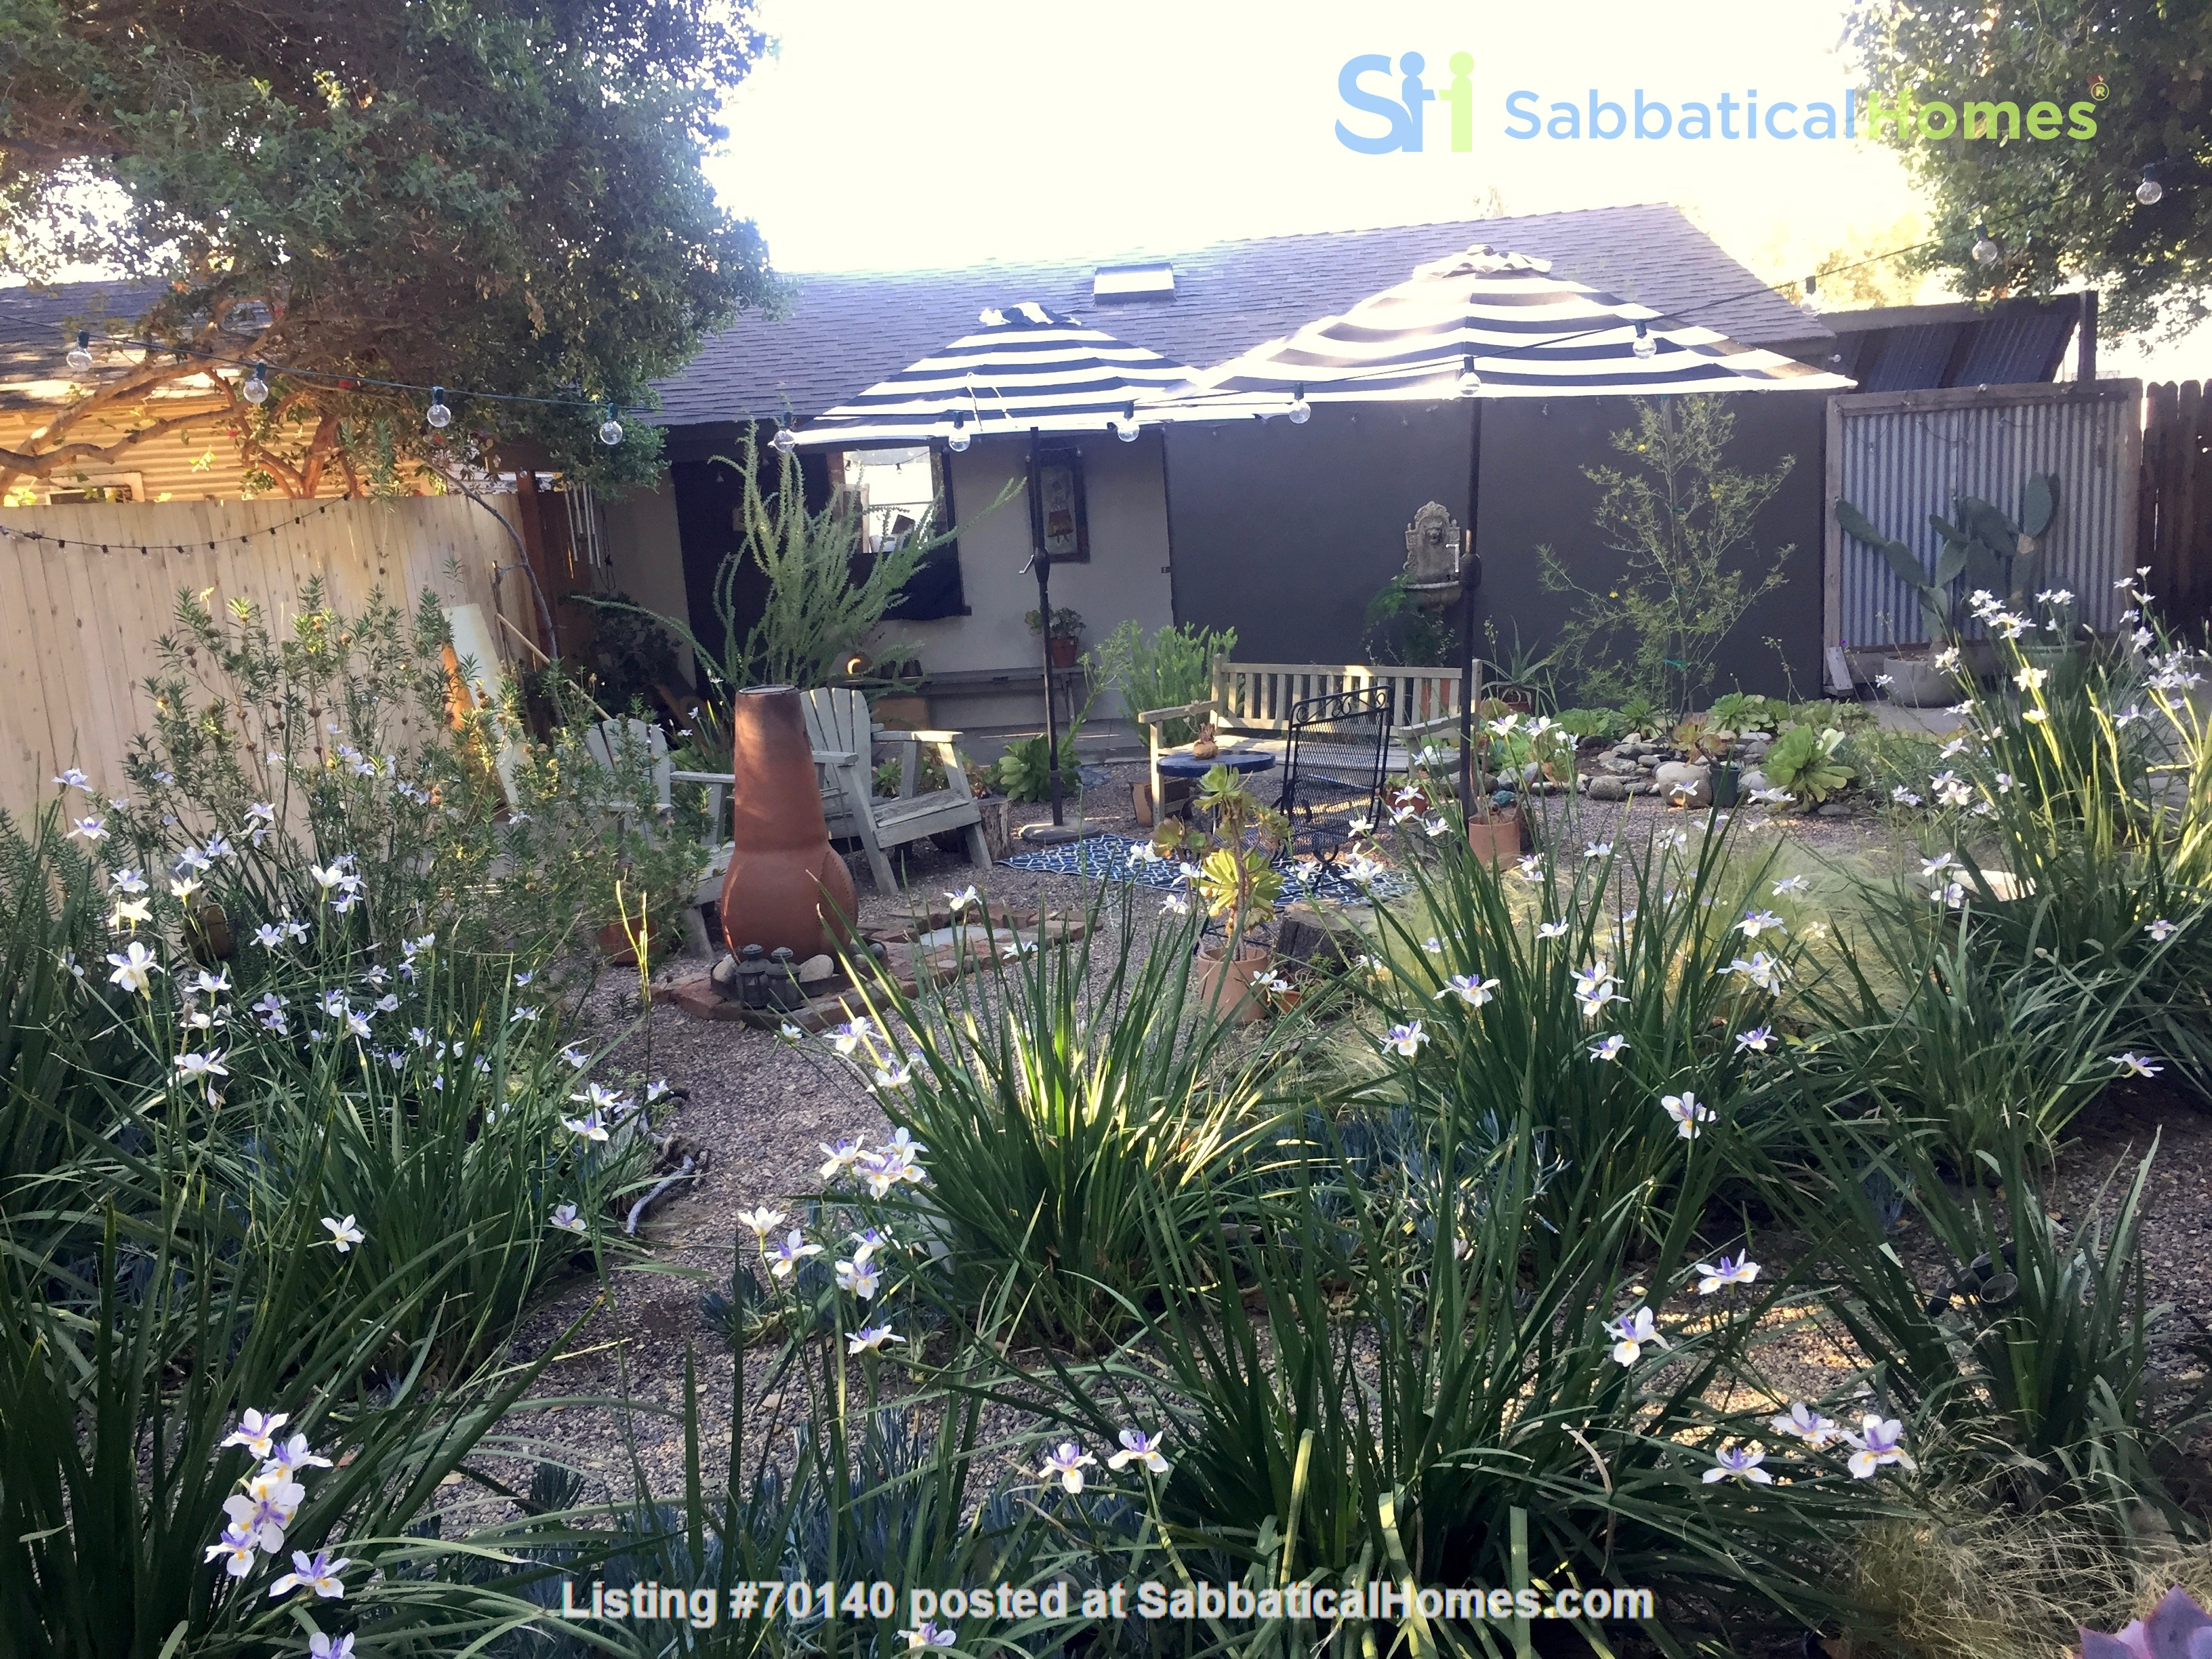 1920's California Bungalow, Pvt. 1 bdrm, bath, kitchenette, and entrance Home Rental in South Pasadena, California, United States 6